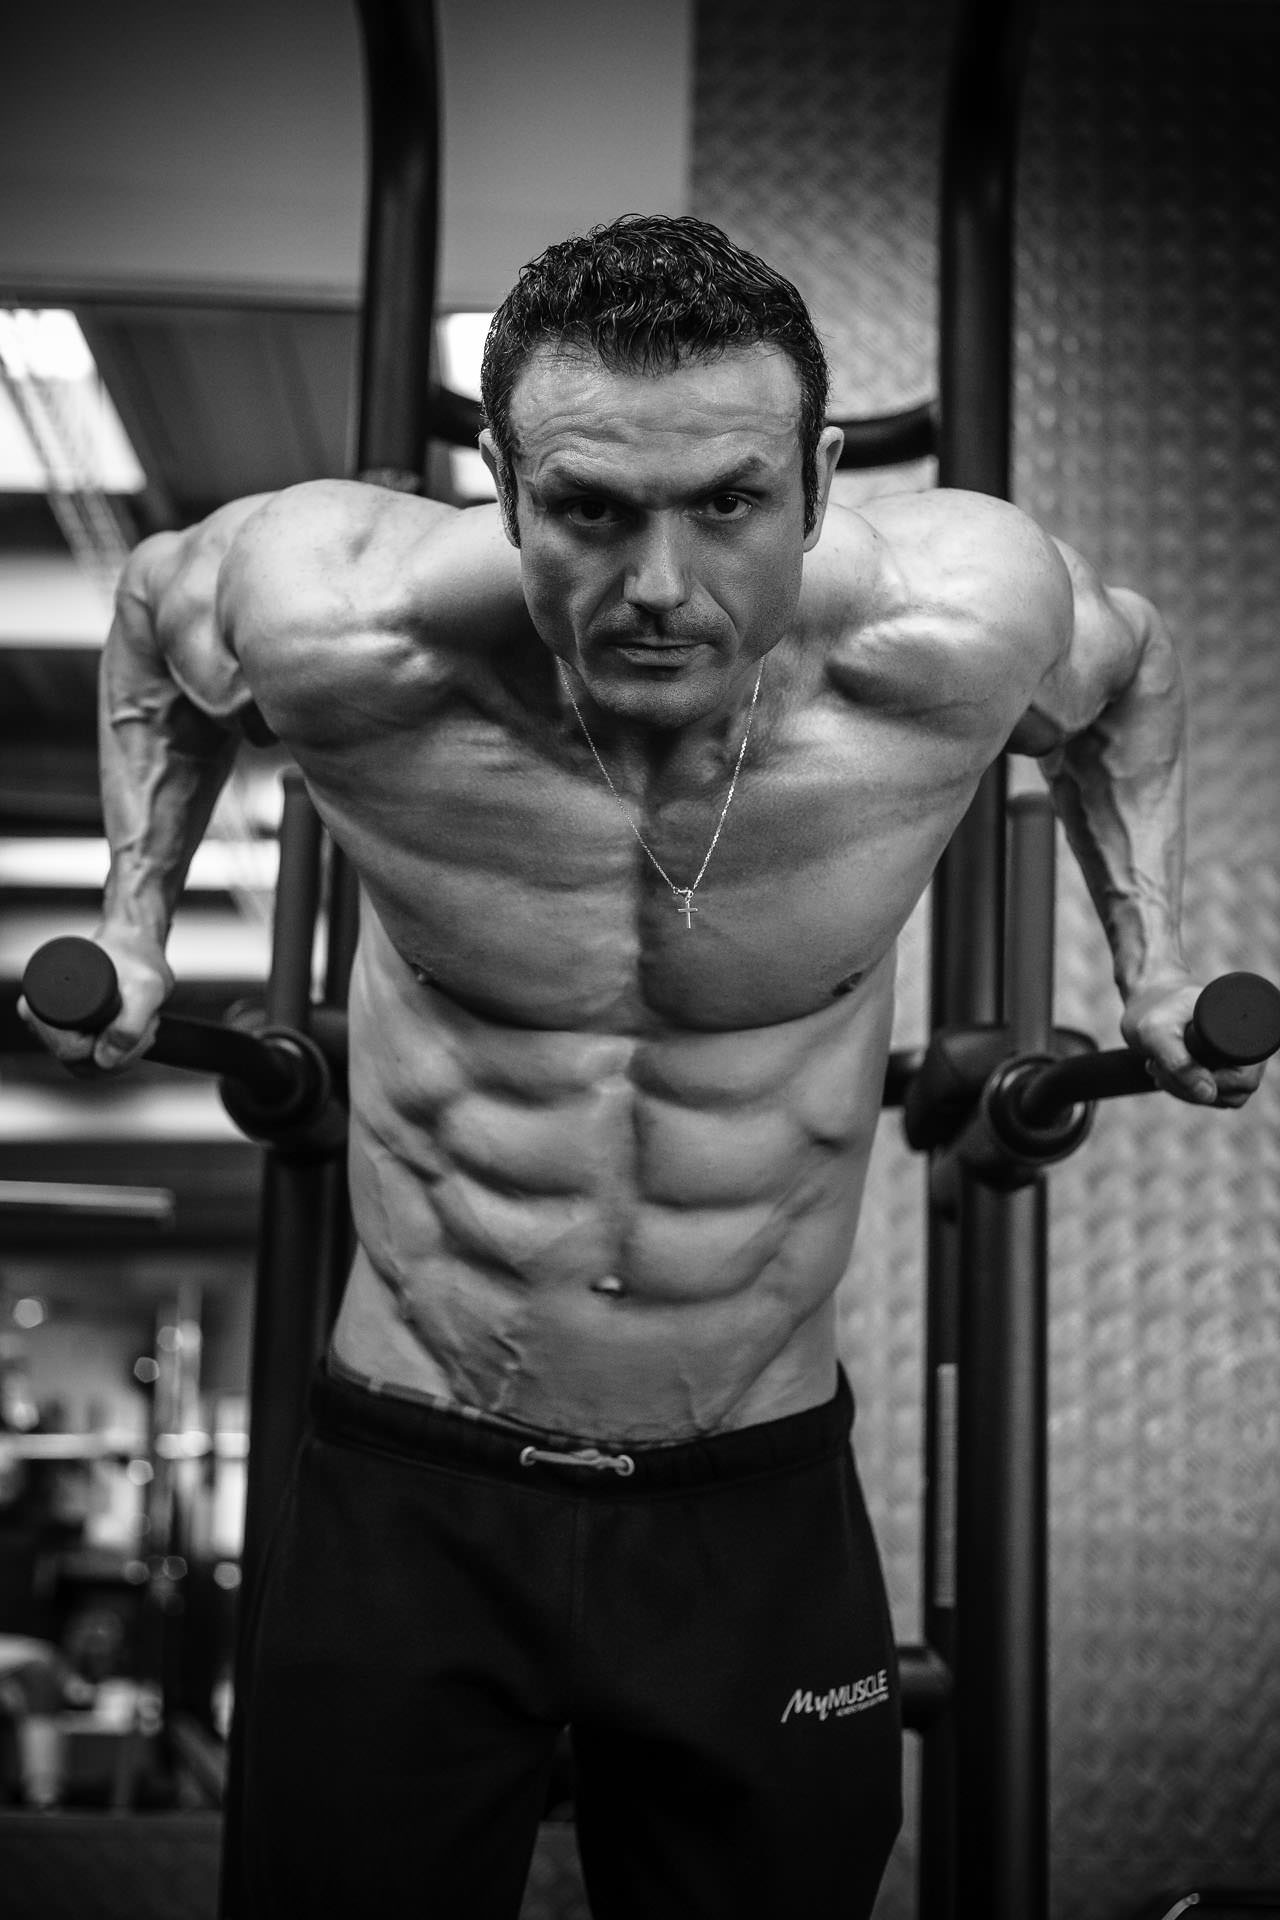 2017-02-24 - Enzo Foukra - MyMuscle - FitnessPark - 4422 - 1920px